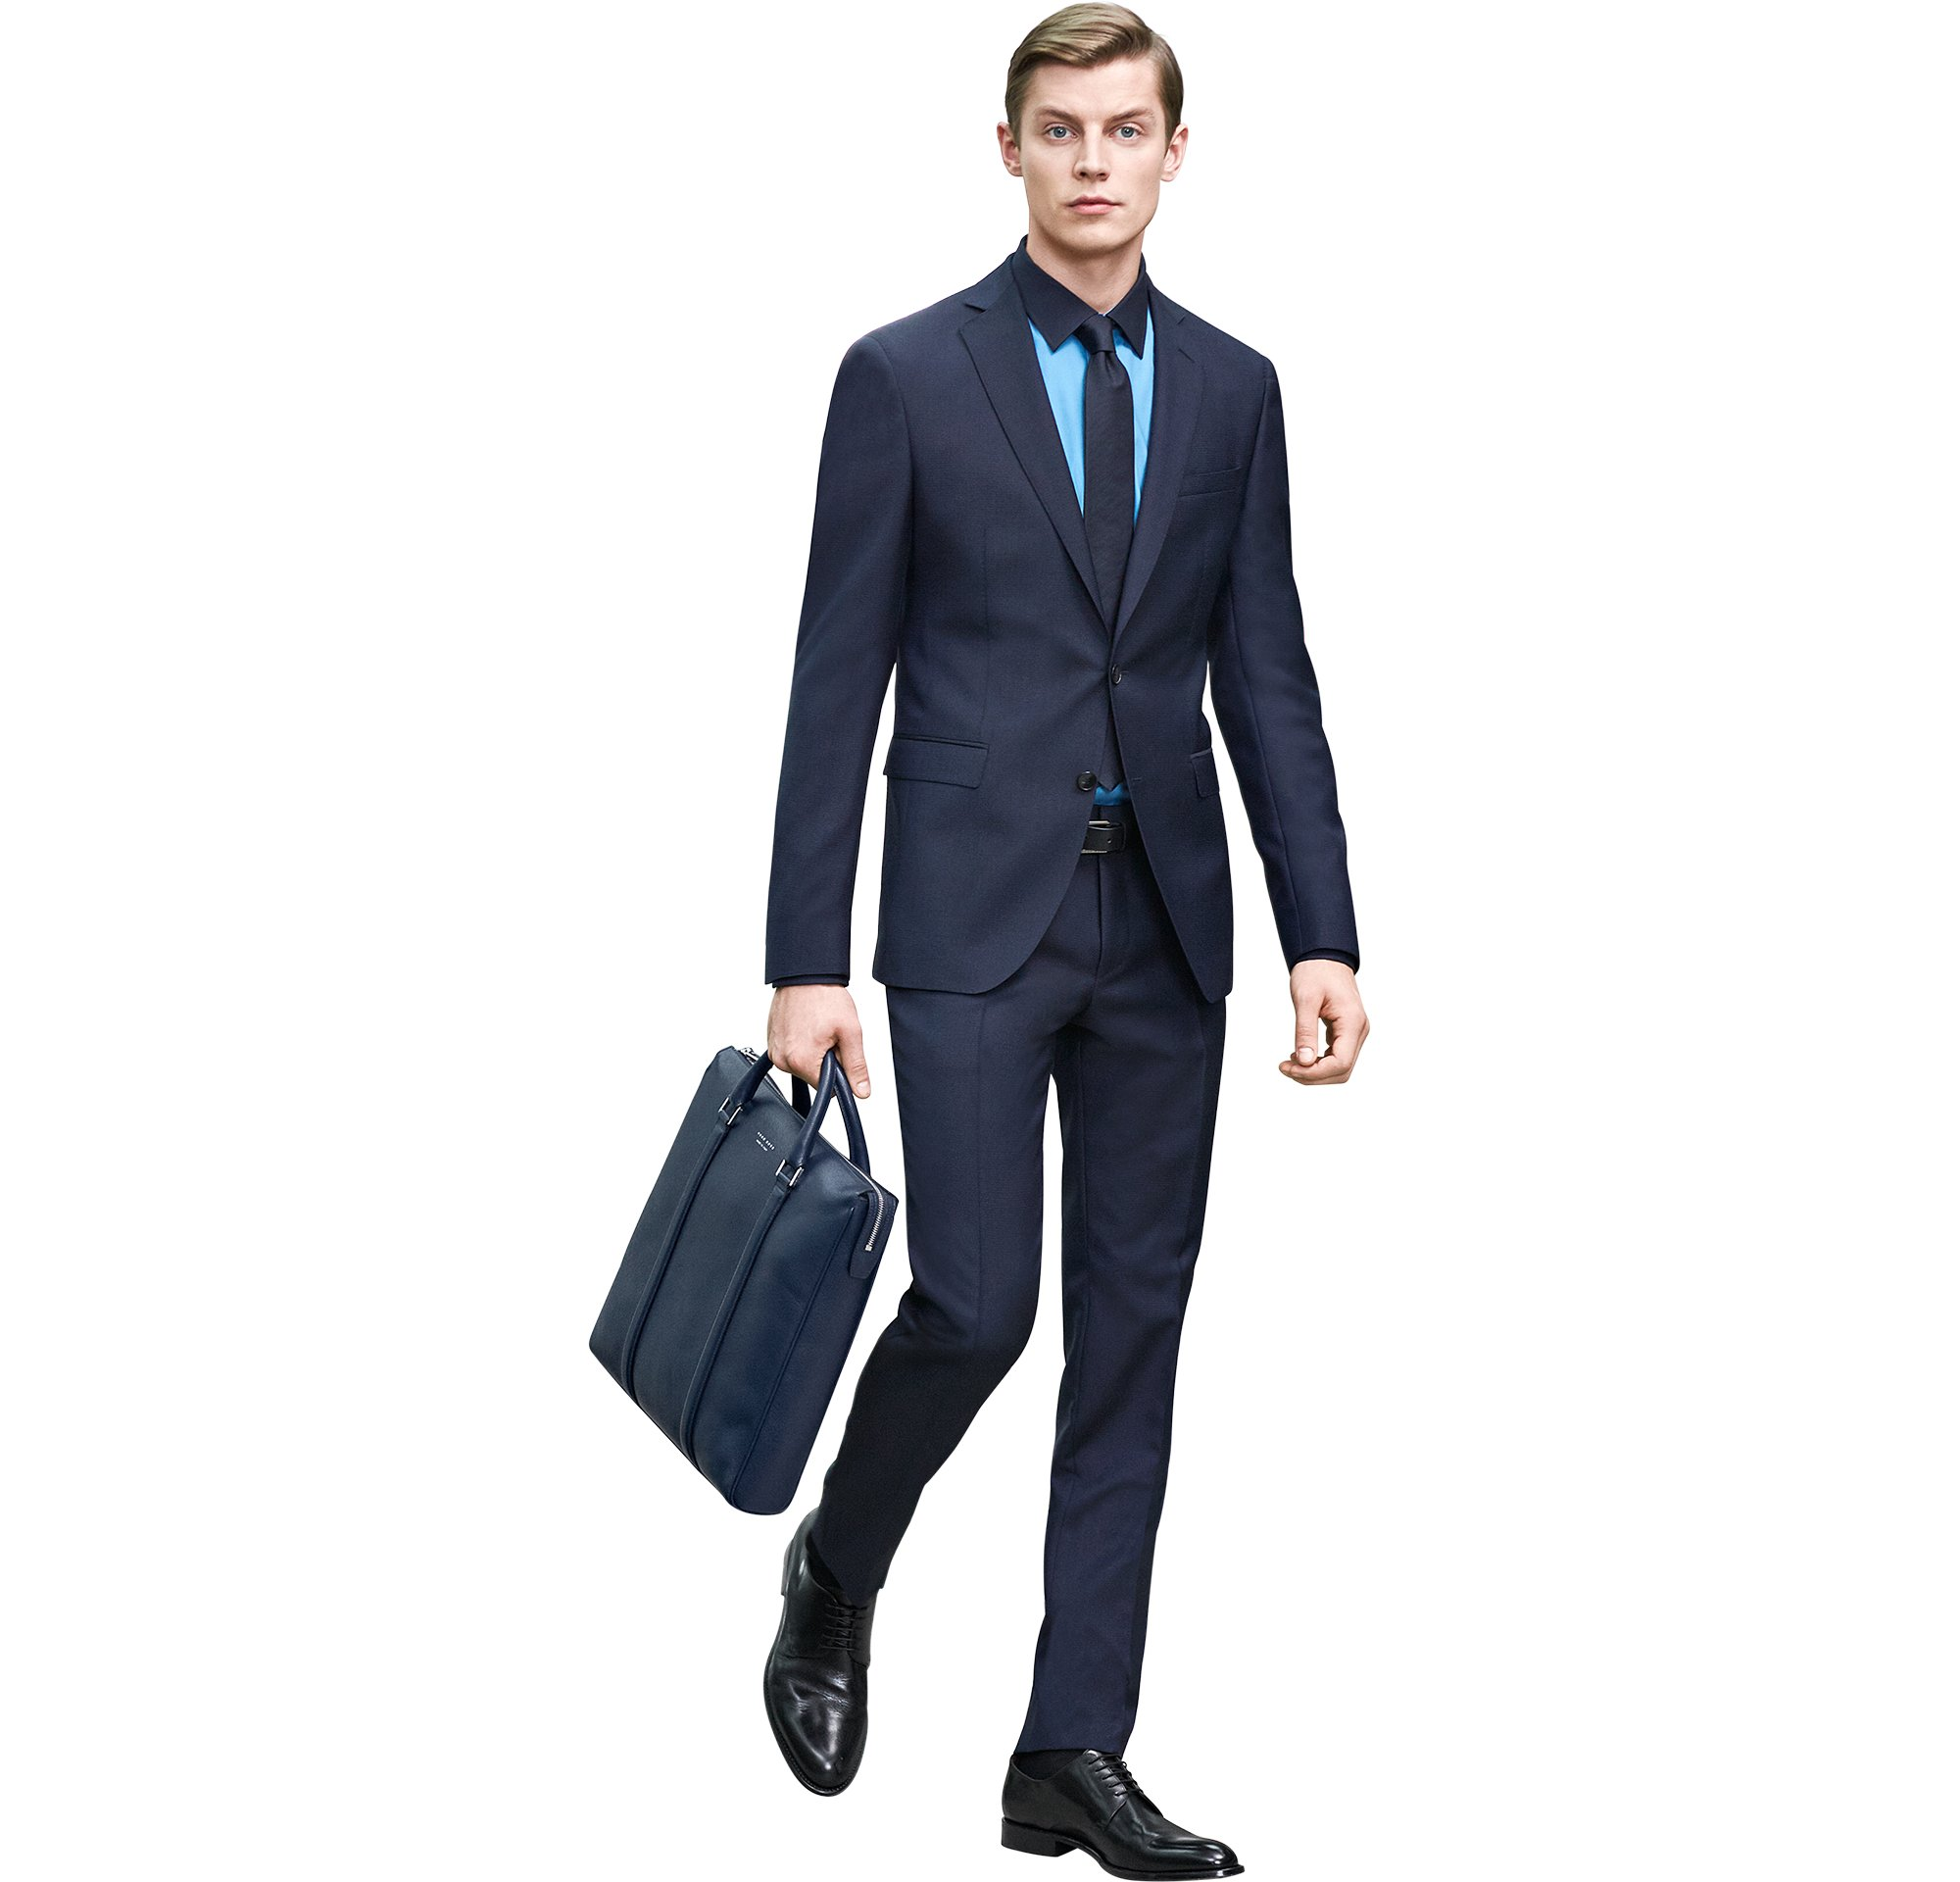 Costume, chemise, cravate, sac et chaussures BOSS Homme